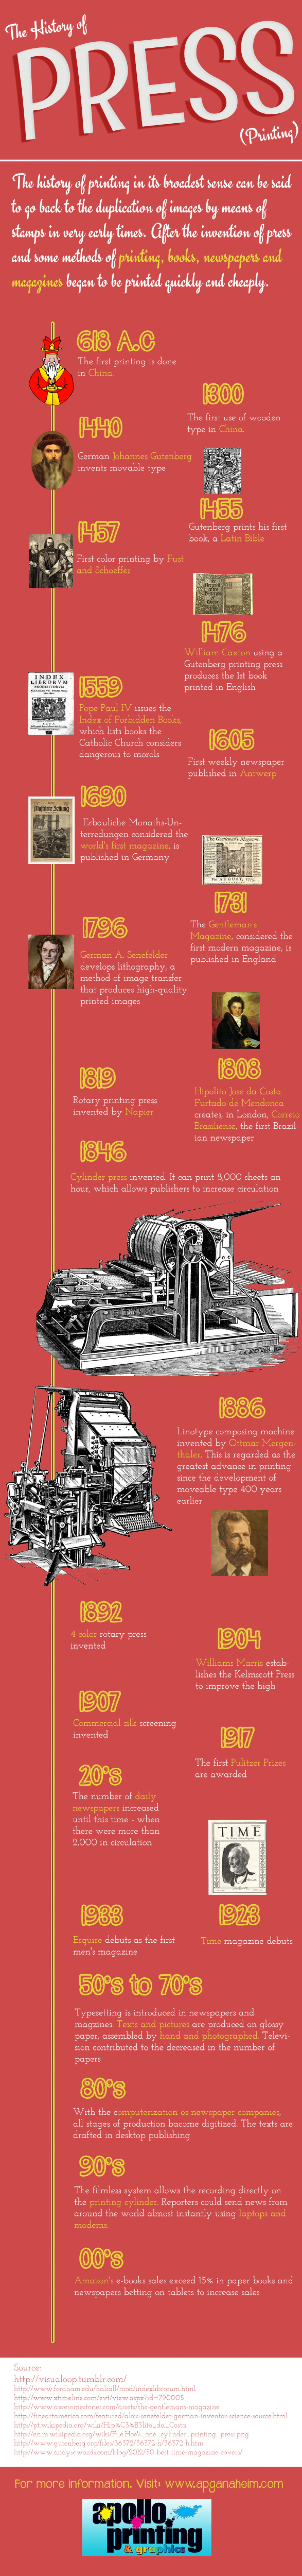 The History of Press (Printing) Infographic